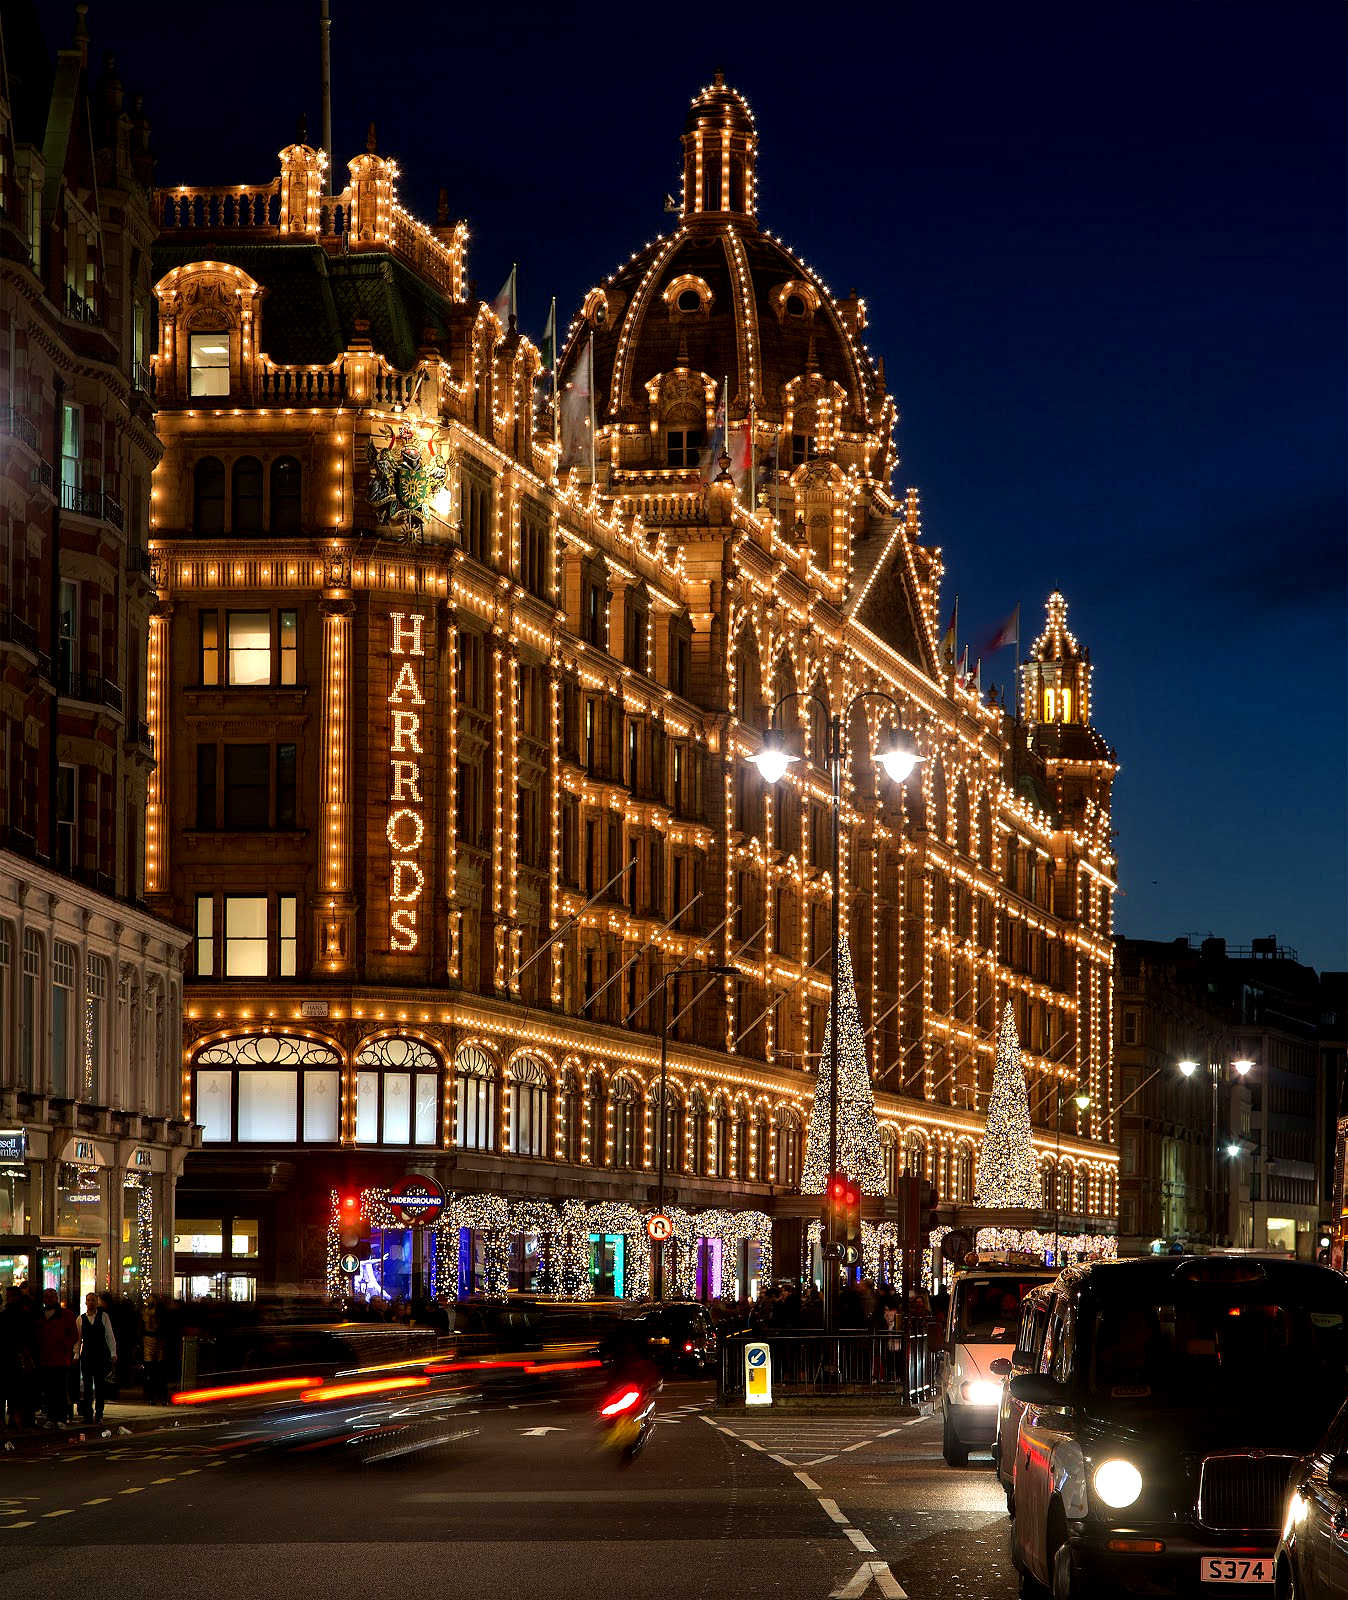 Harrods Harrods - The best shop for your Christmas Gifts Harrods – The best shop for your Christmas Gifts Harrods Kensington Christmas UK London London in Winter Spirit of England Peter Crawford